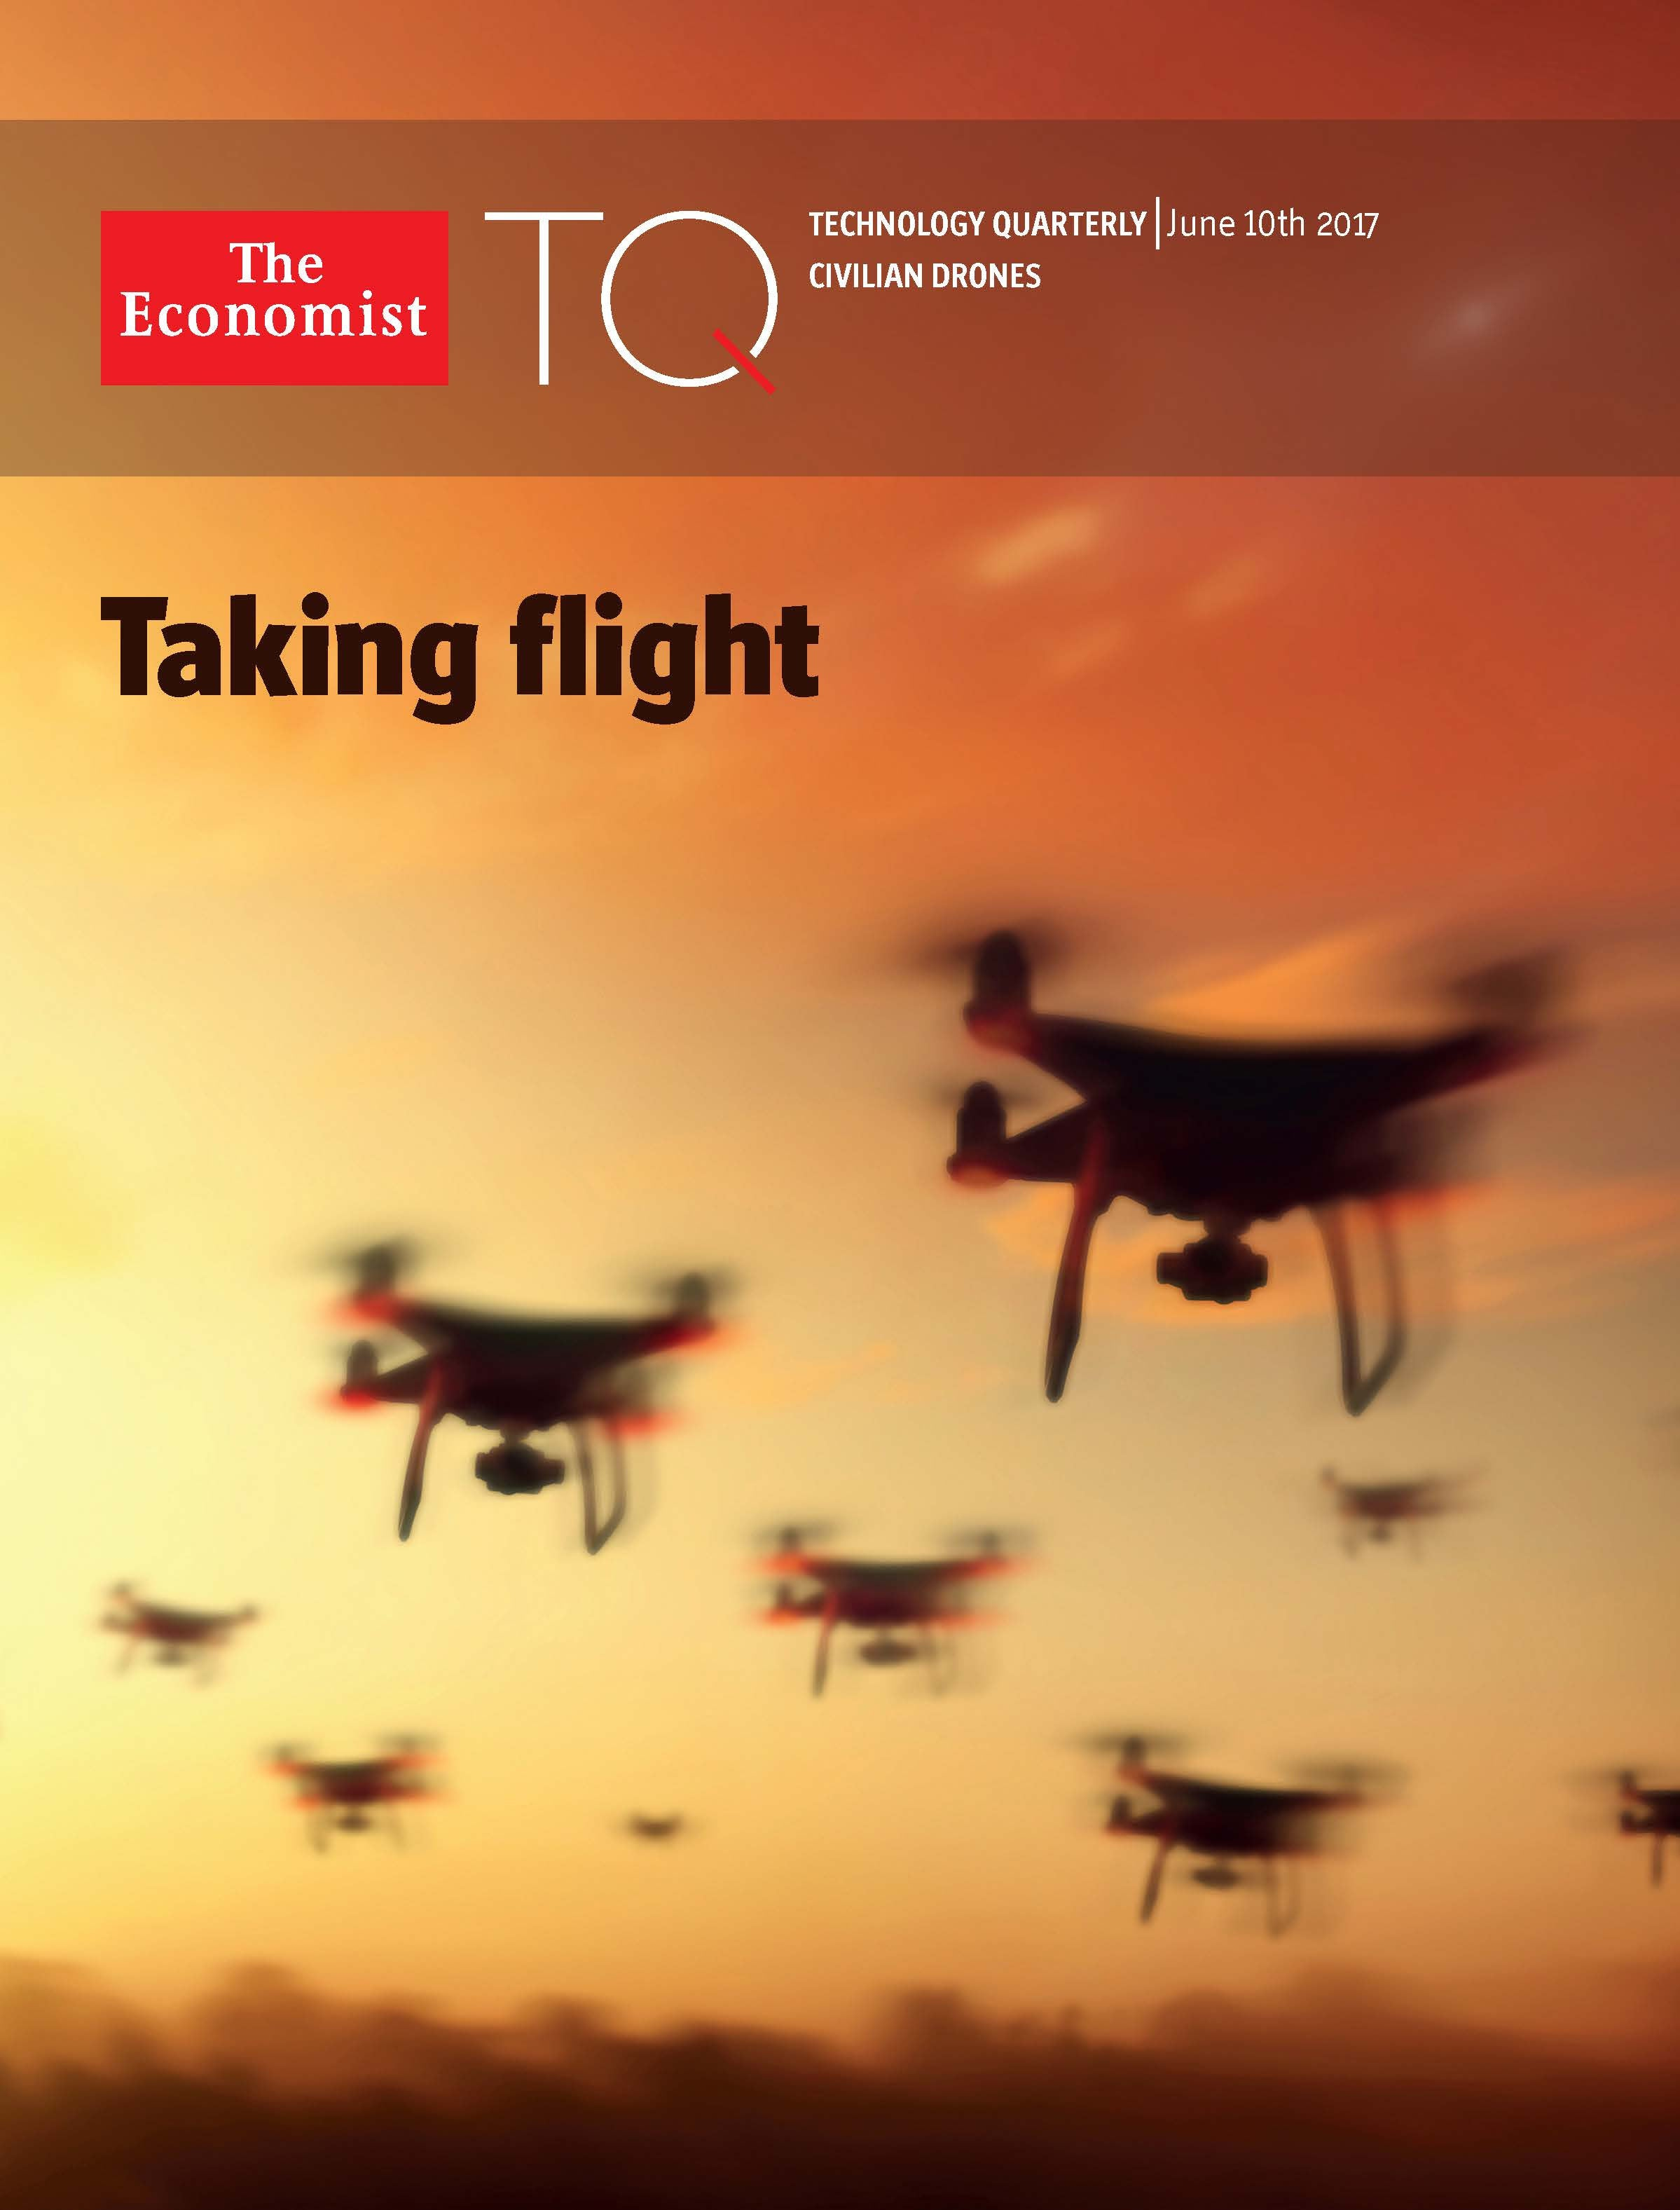 Technology Quarterly in audio: Civilian Drones